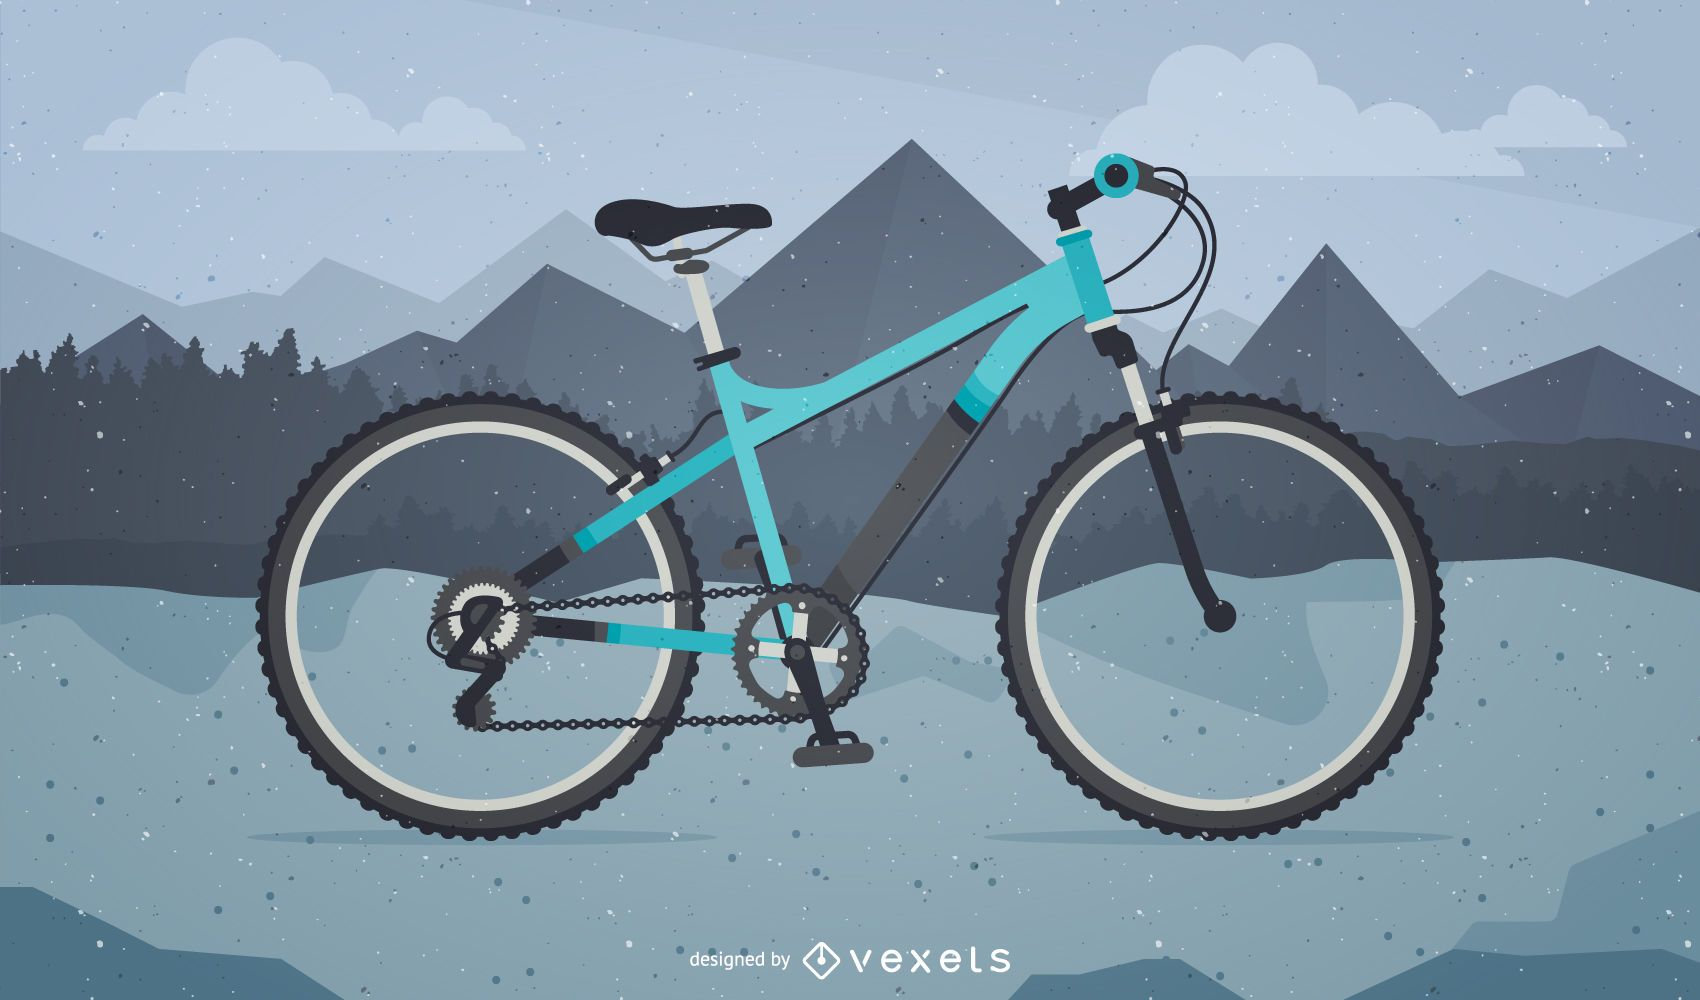 Bicycle illustration on mountains